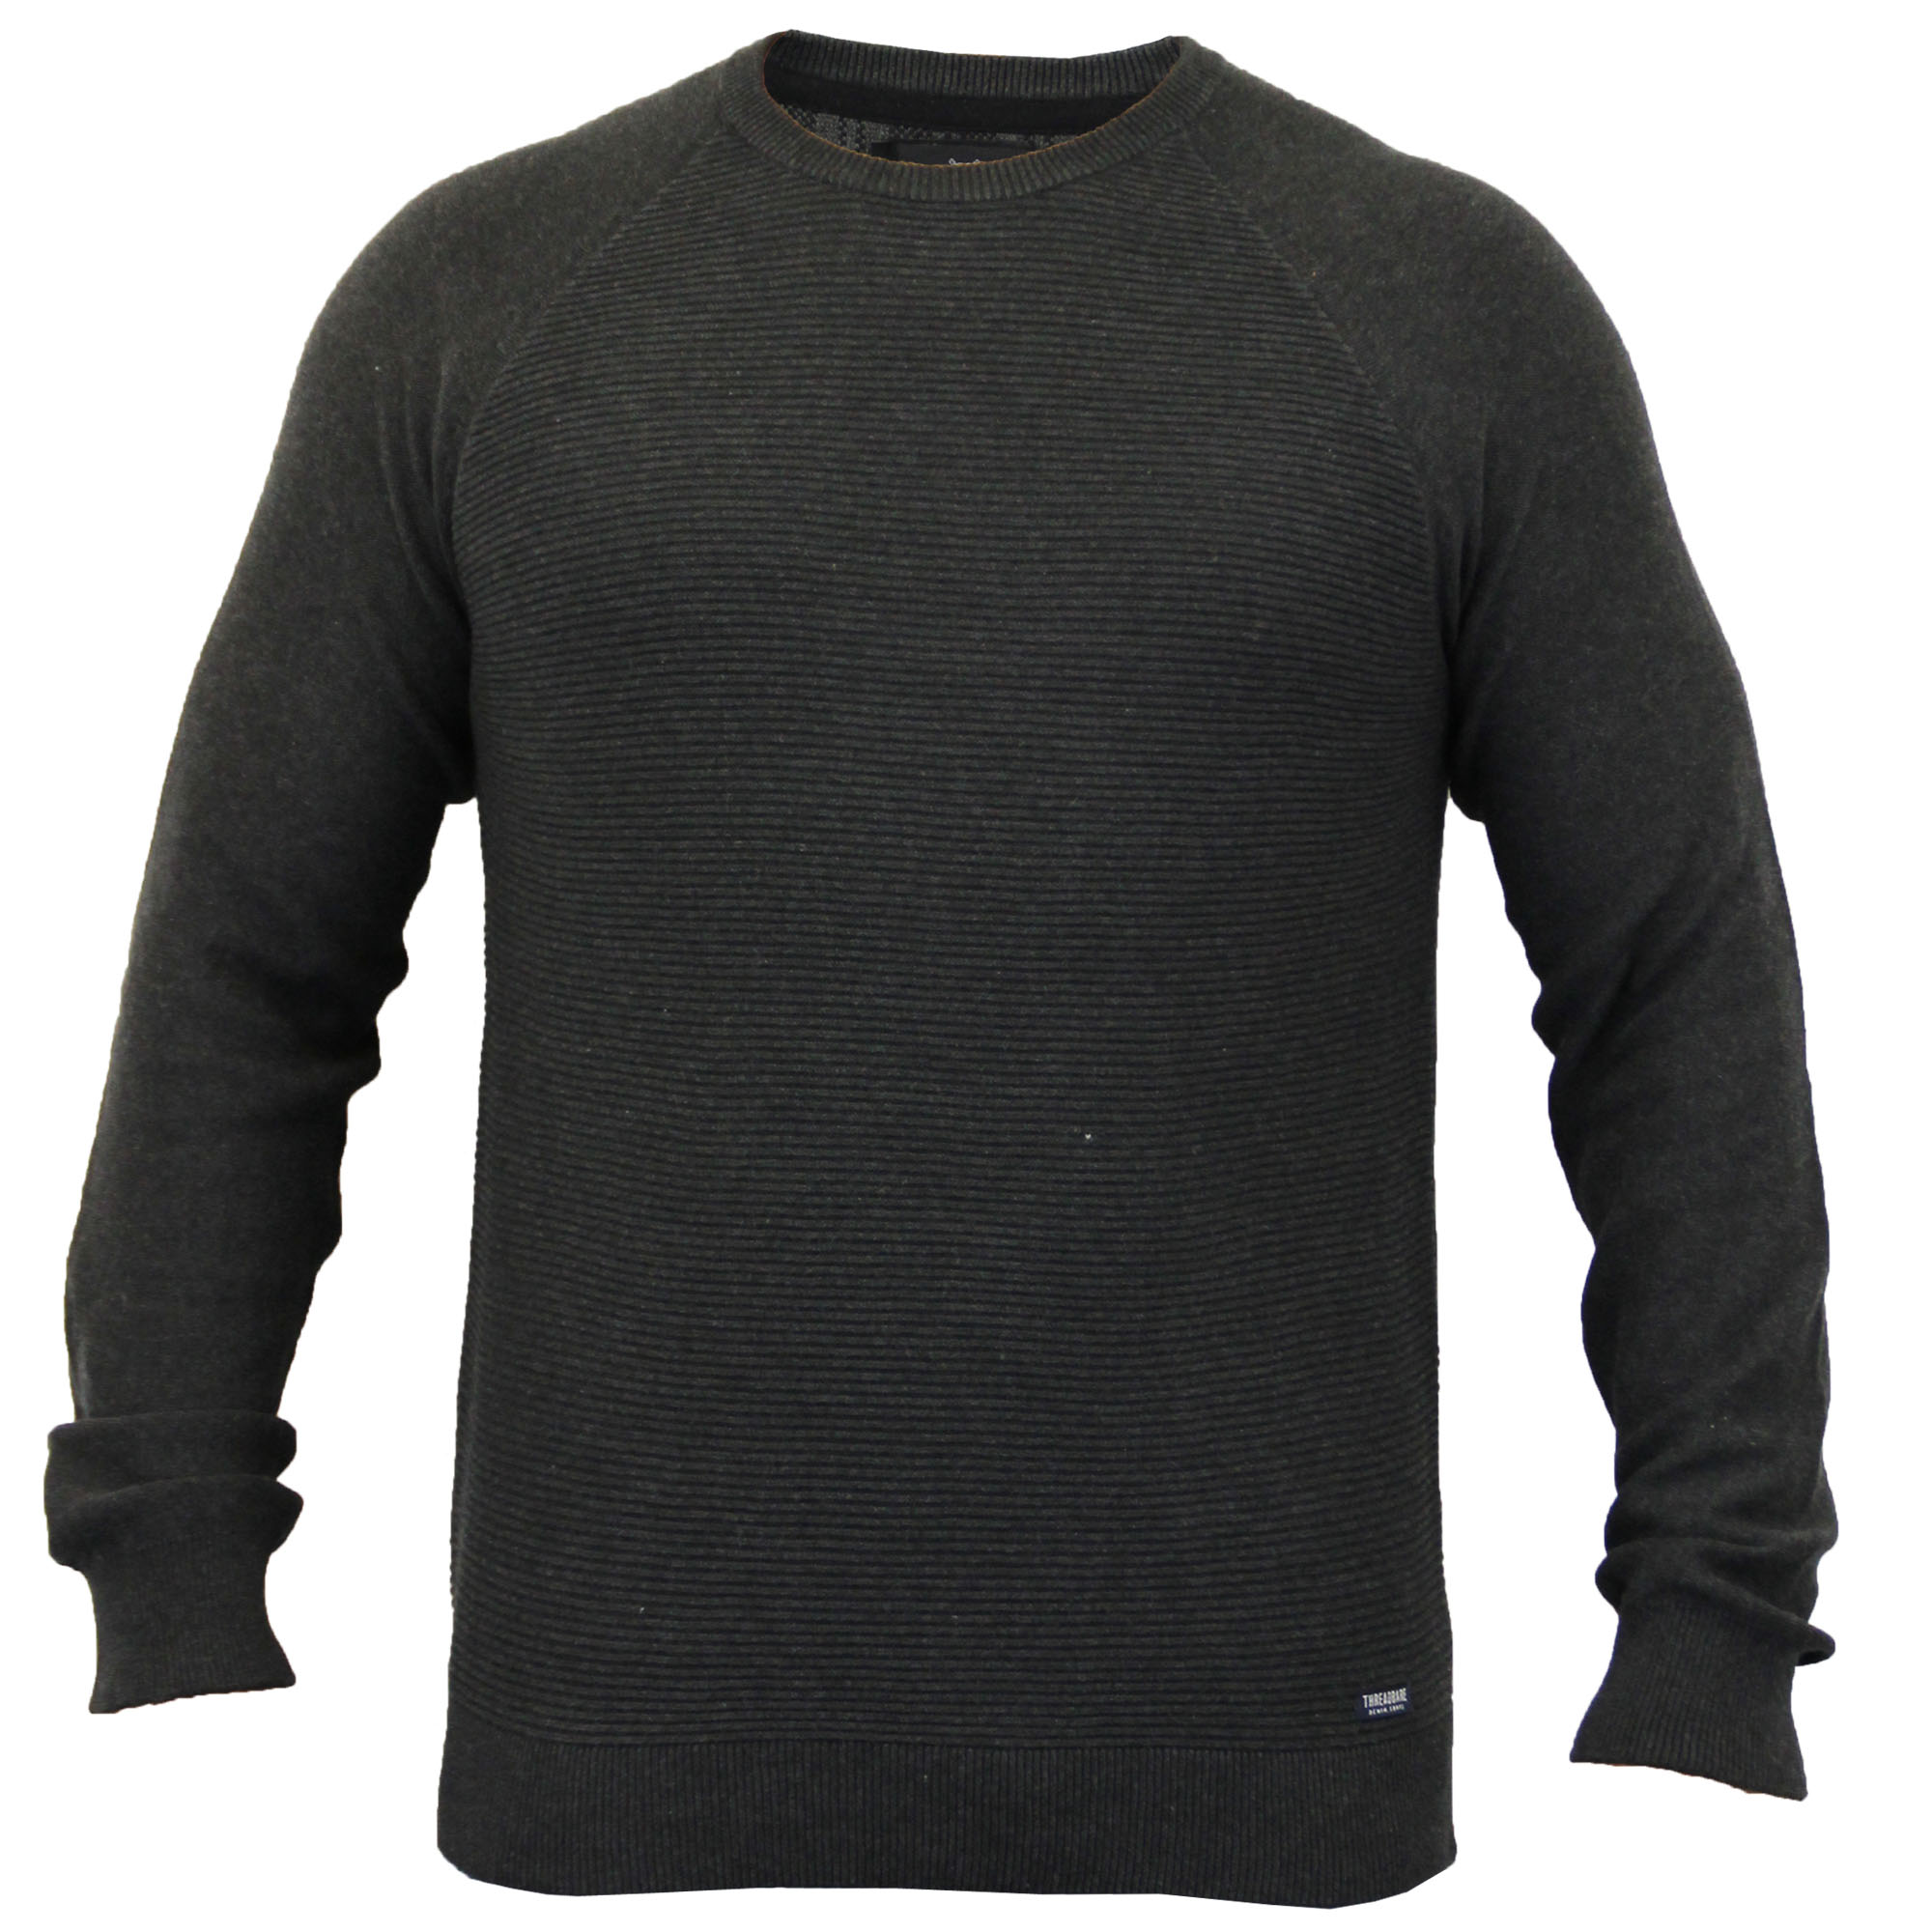 Mens-Jumper-Threadbare-Knitted-Chunky-Sweater-Top-Pullover-Crew-Neck-Winter-New thumbnail 6